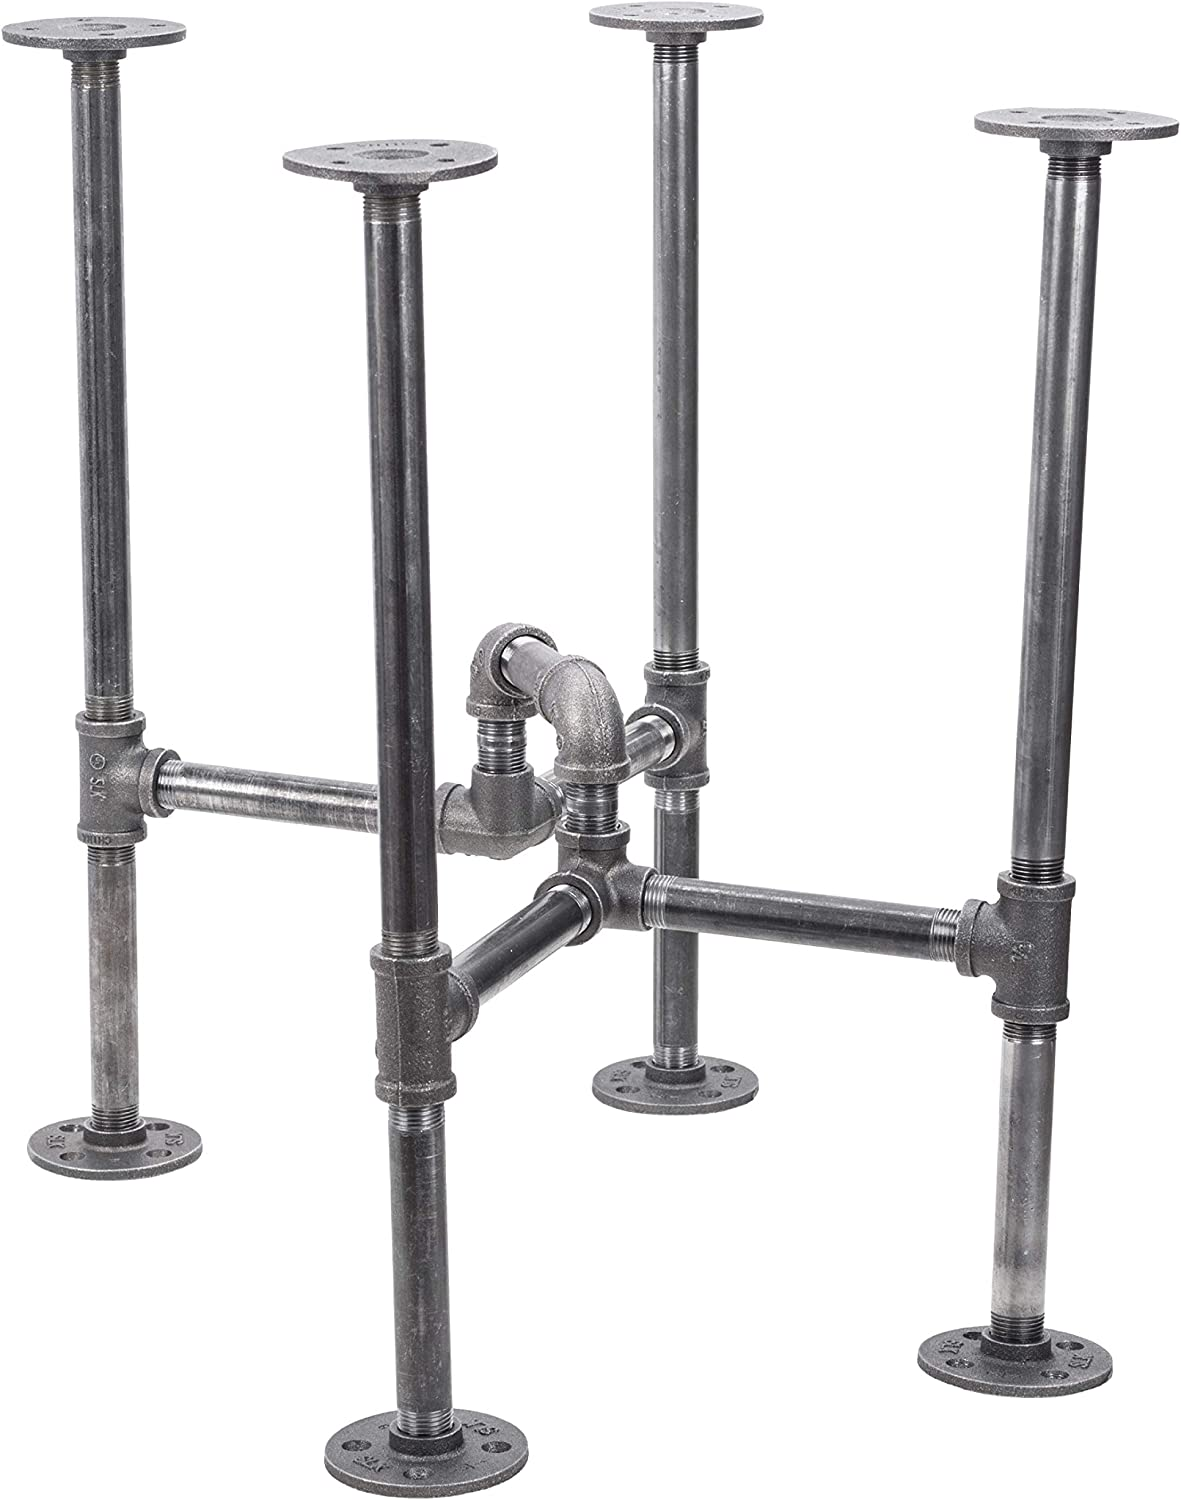 Industrial Pipe Decor Table Leg Set, Rustic End Table Side Table Base Kit, Dark Grey/Black Steel Metal Pipes Vintage Furniture Decorations DIY Coffee Table Legs Mid Century Modern, Underpass Style